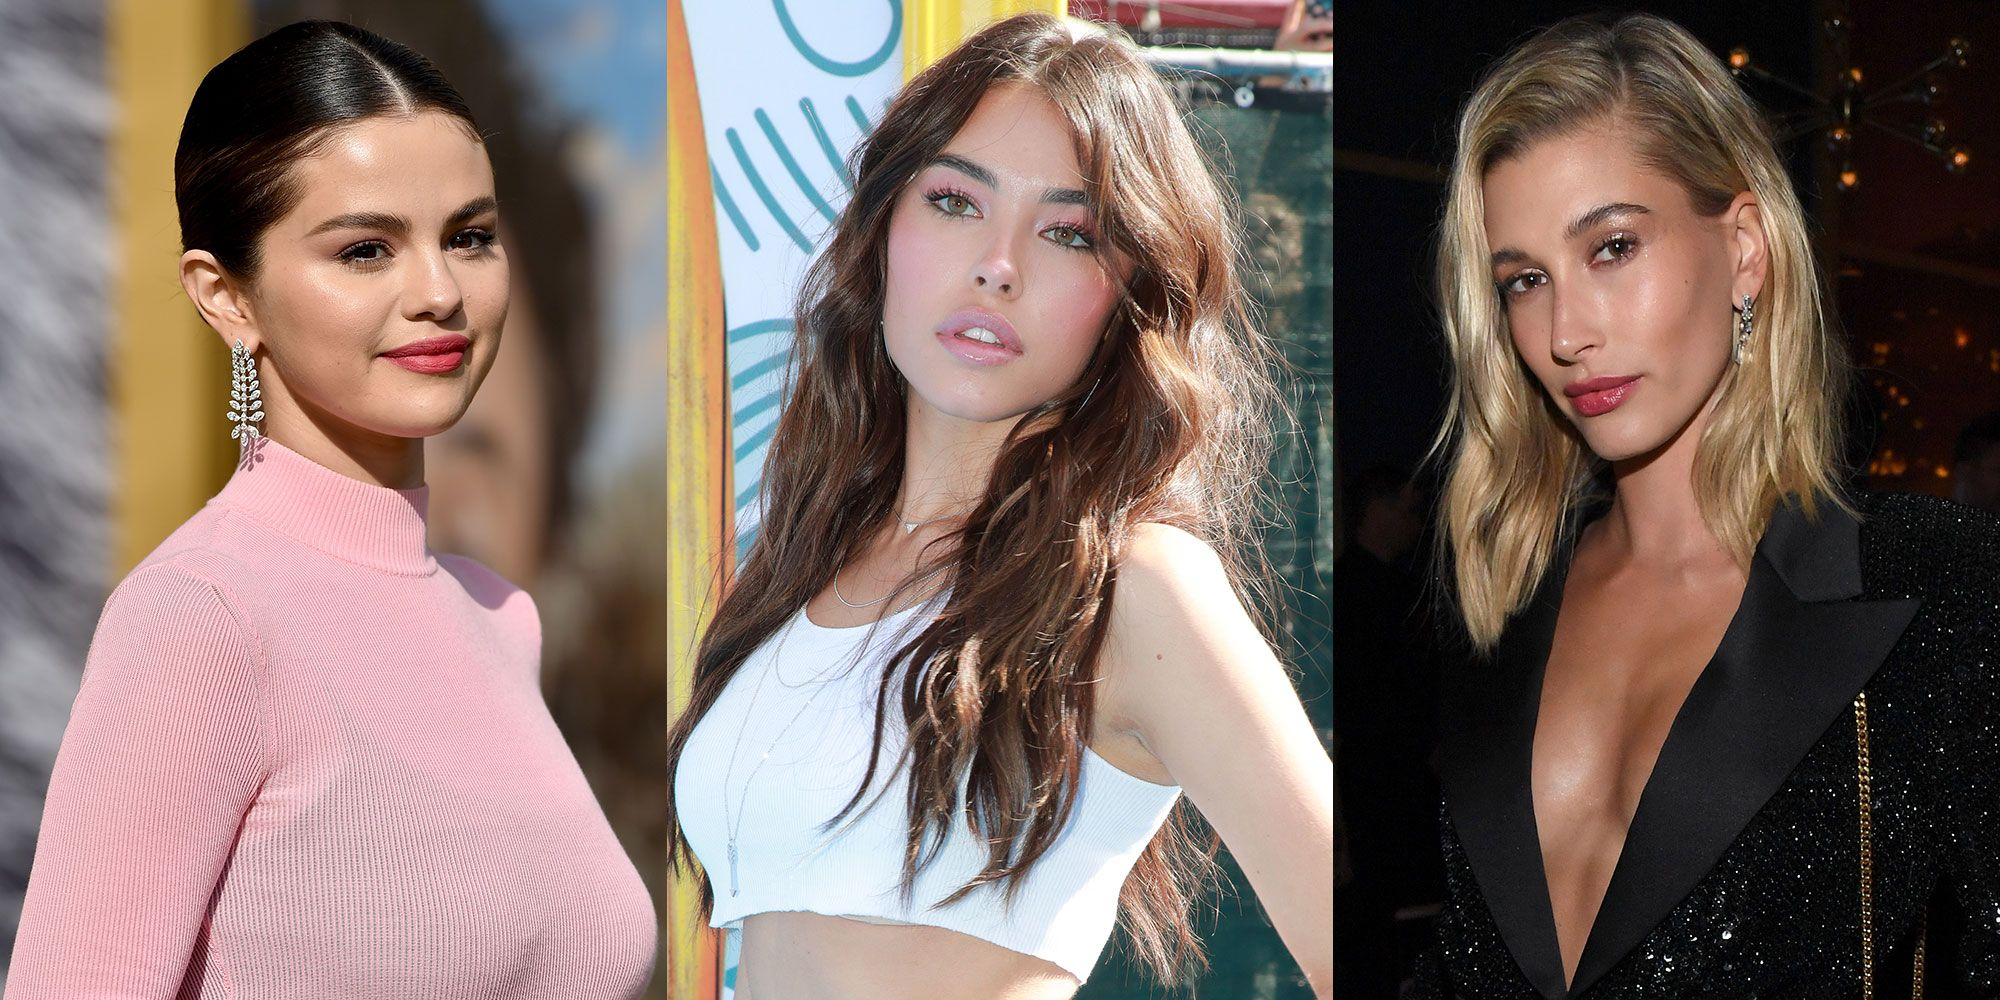 Selena Gomez Says There's No Drama Between Her, Hailey Baldwin, and Madison Beer